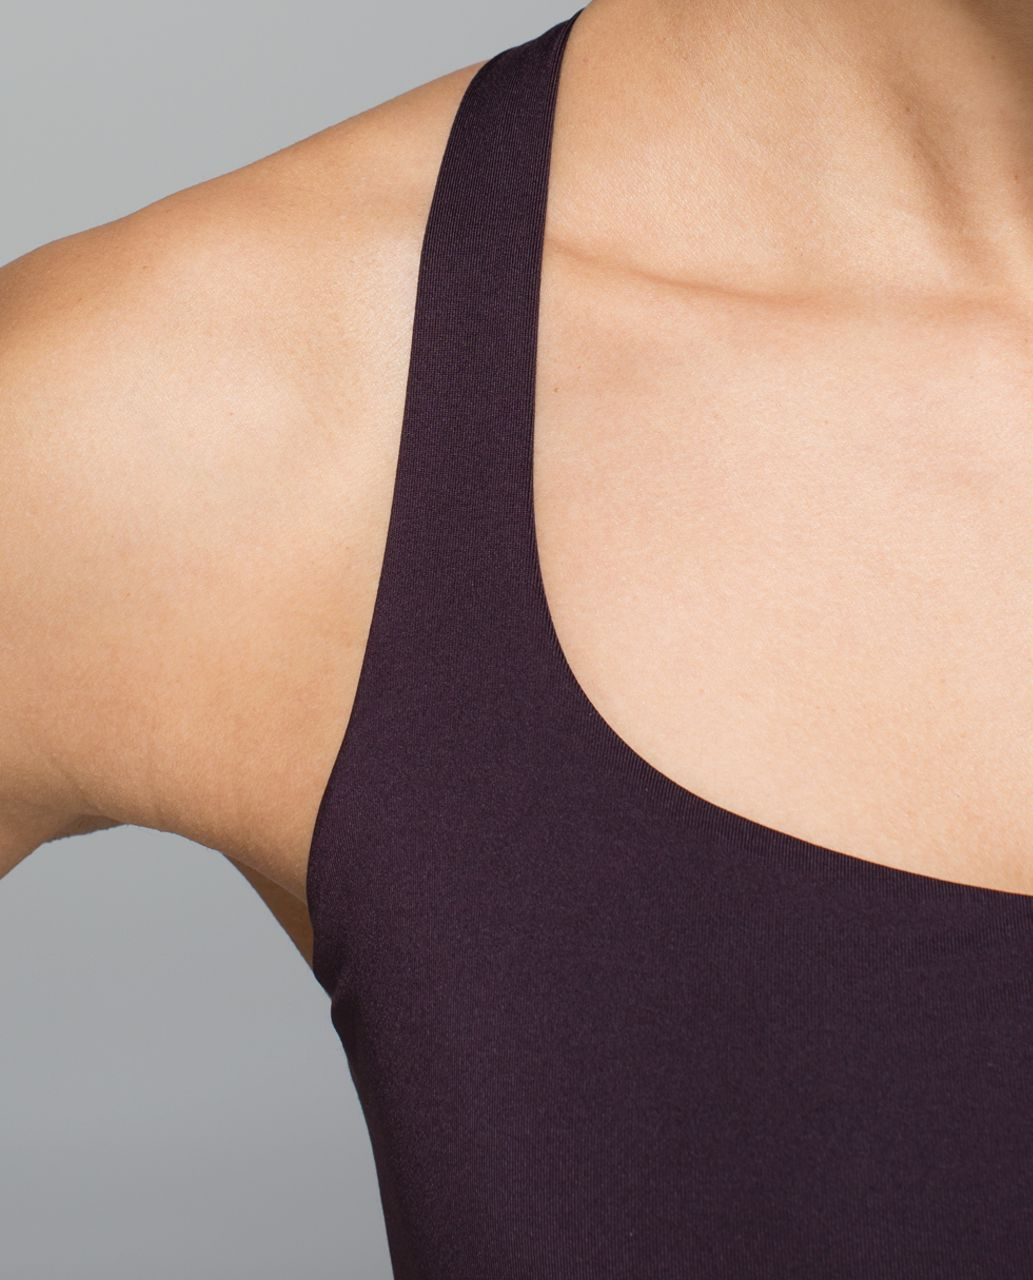 Lululemon Free To Be Bra (Wild) - Black Cherry / Raspberry Glo Light / Bark Berry